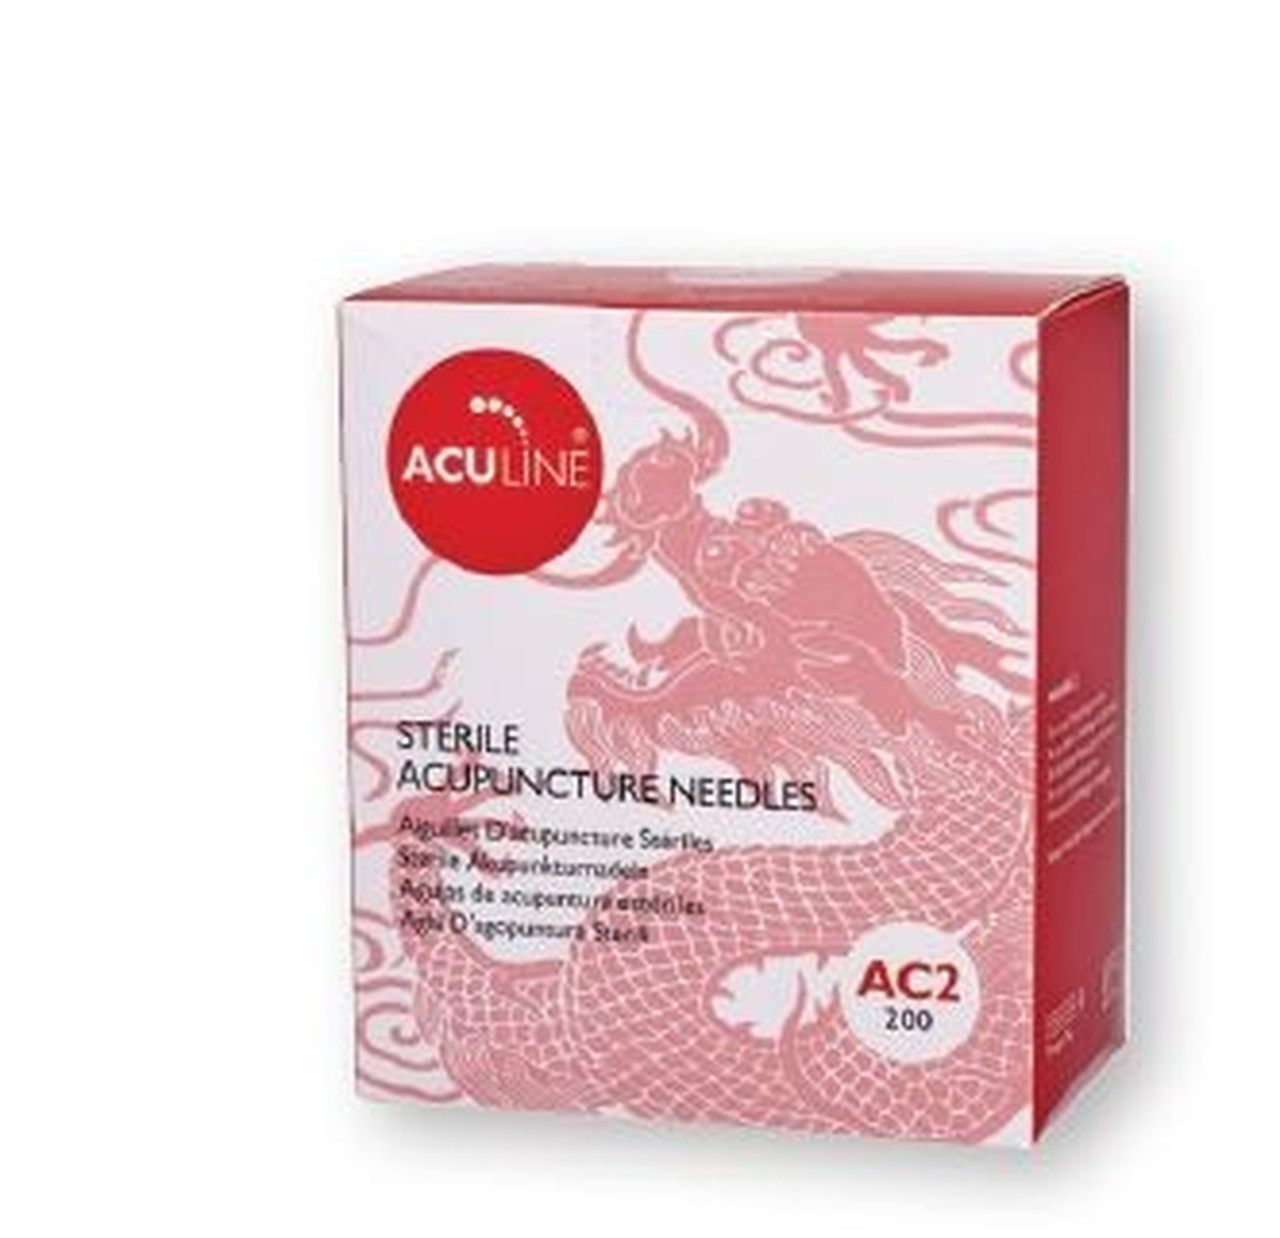 Aculine Copper Handle Acupuncture Needles